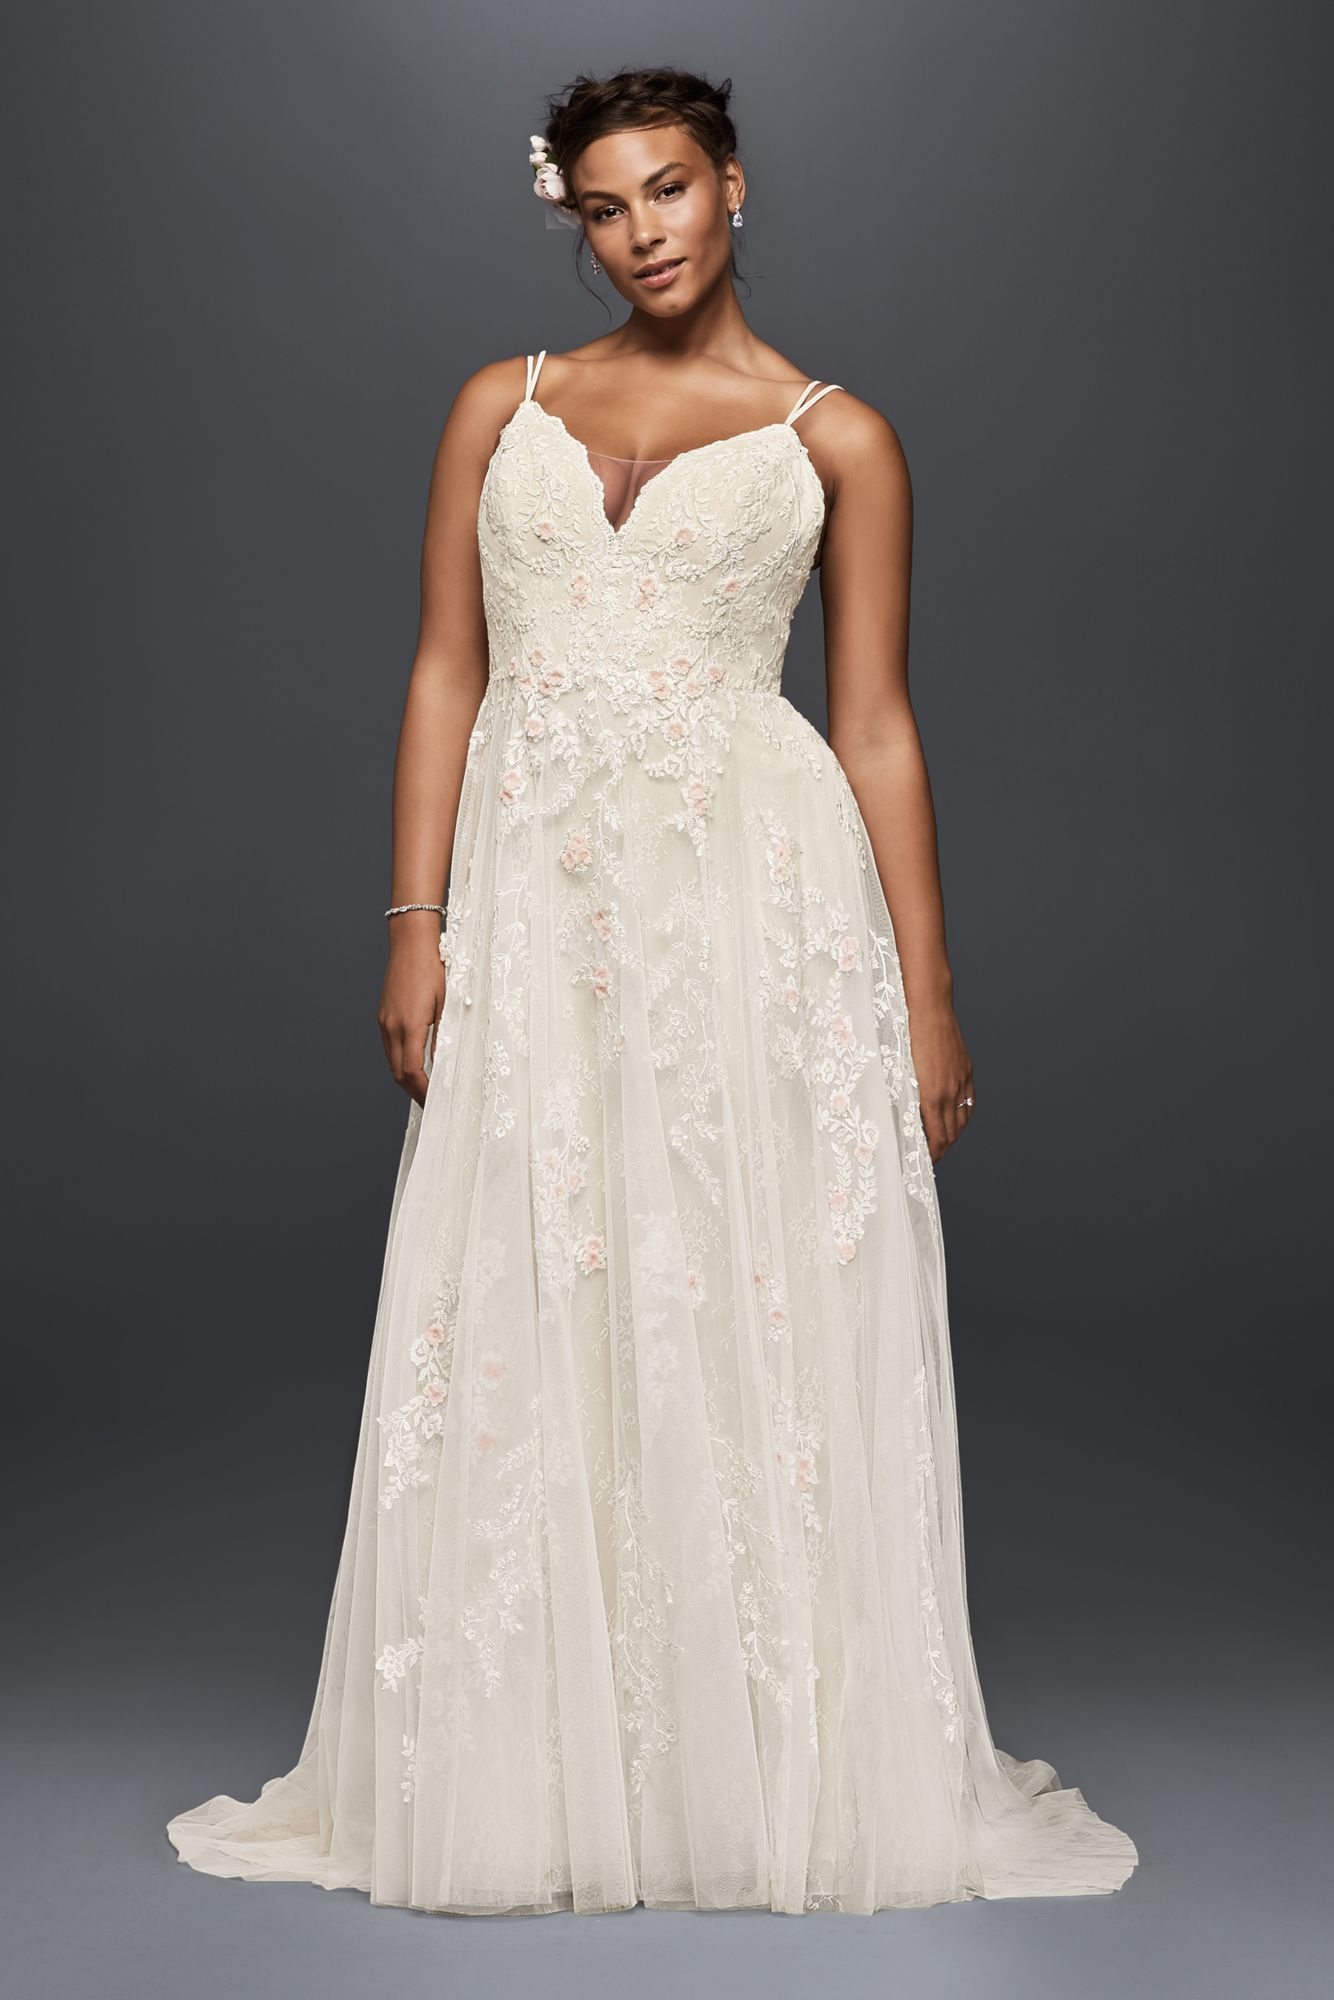 Plus Size Melissa Sweet Spaghetti Straps Long A Line Lace And Tulle Wedding Gowns 8ms251177 Wedding Dress Styles Wedding Dresses Davids Bridal Wedding Dresses